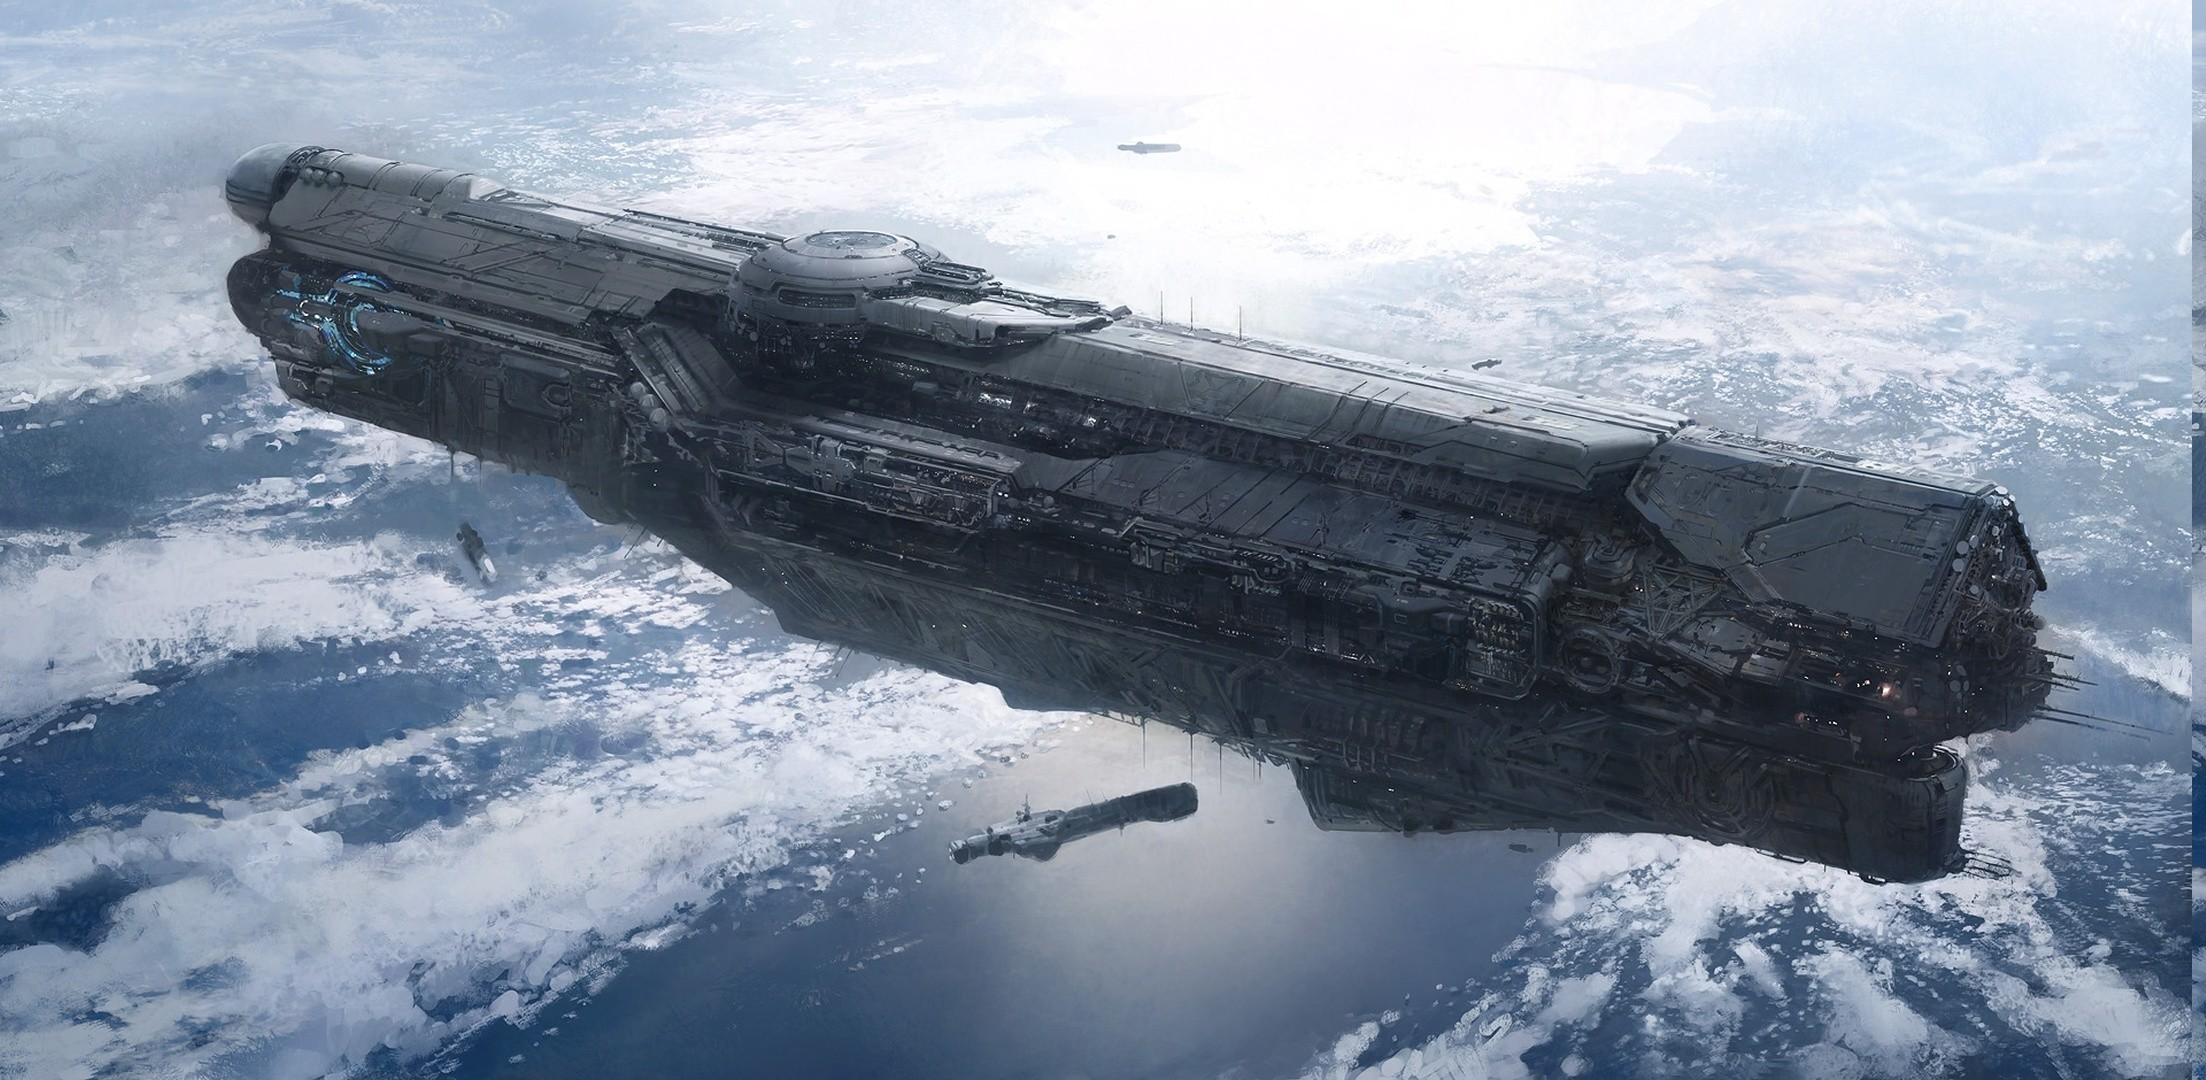 Res: 2206x1080, Halo, Spaceship, Halo 4, UNSC Infinity Wallpapers HD / Desktop and Mobile  Backgrounds